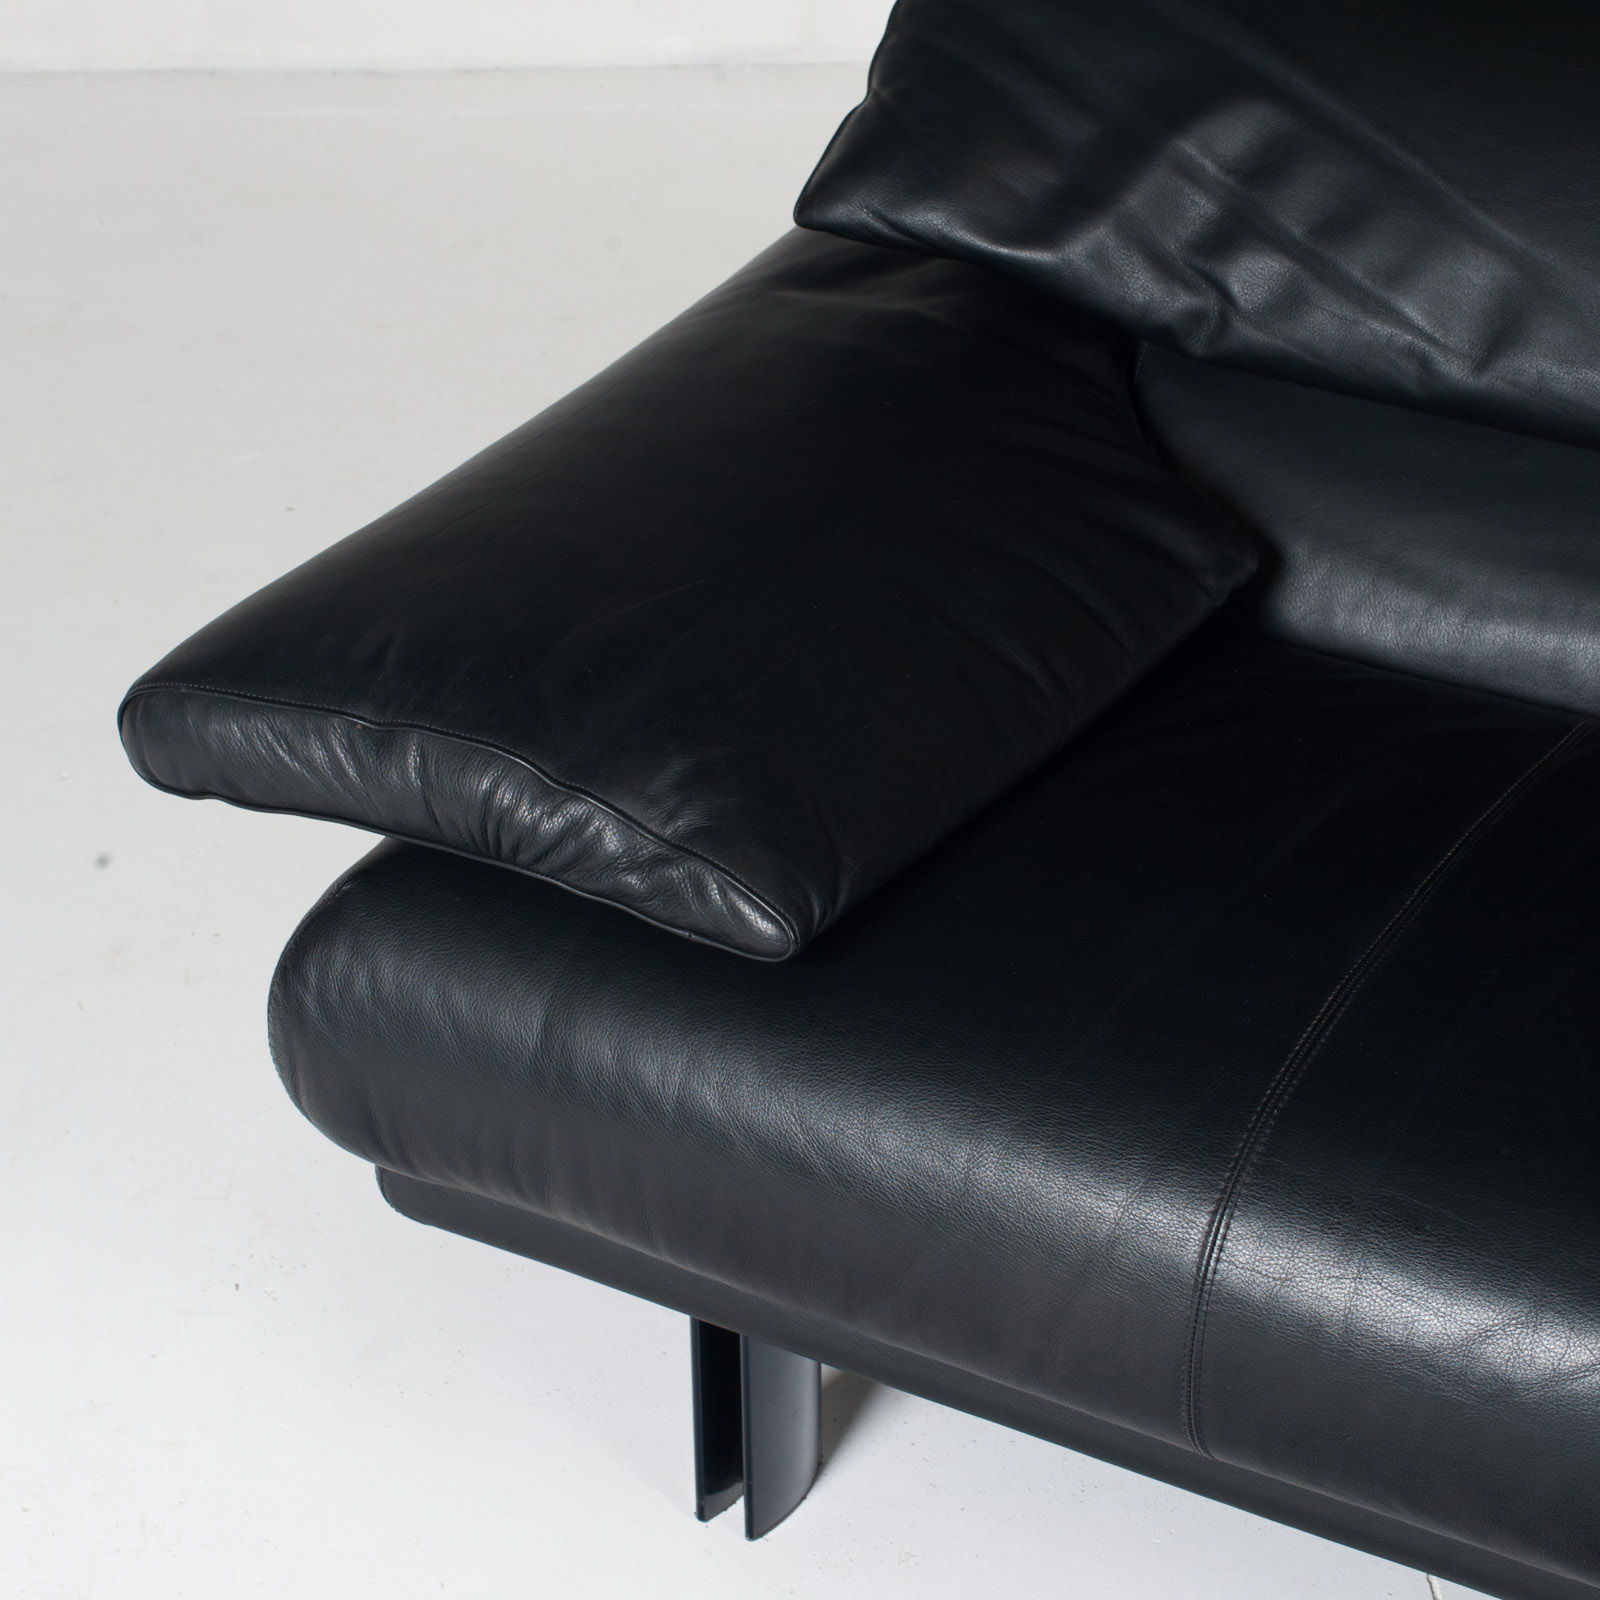 Alanda Armchair By Paolo Piva For B&b Italia In Black Leather, 1980s, Italy 8